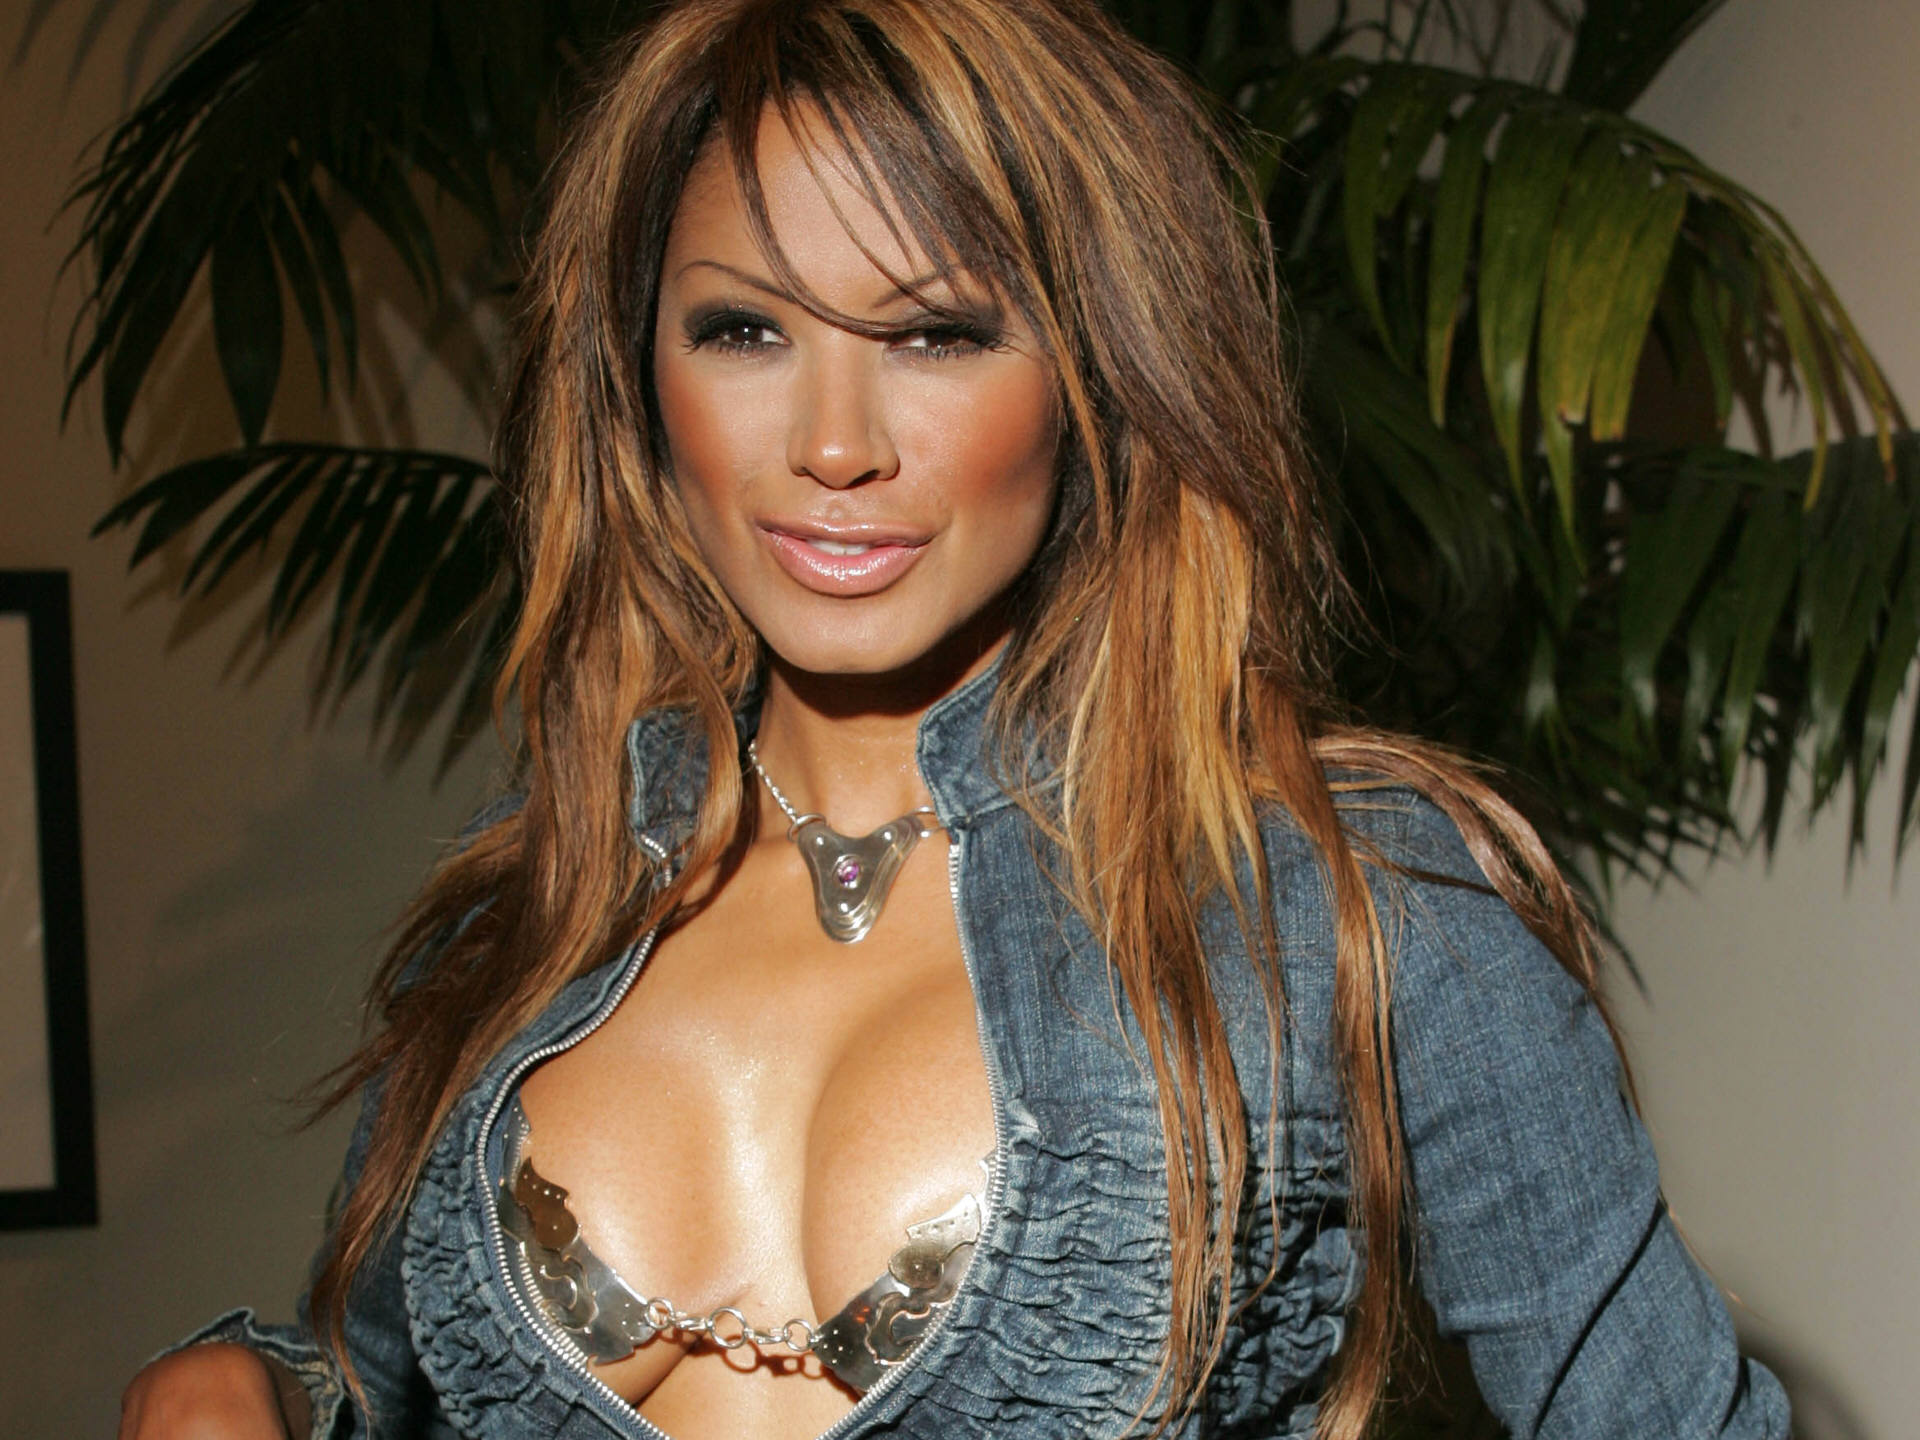 Traci Bingham Full hd wallpapers